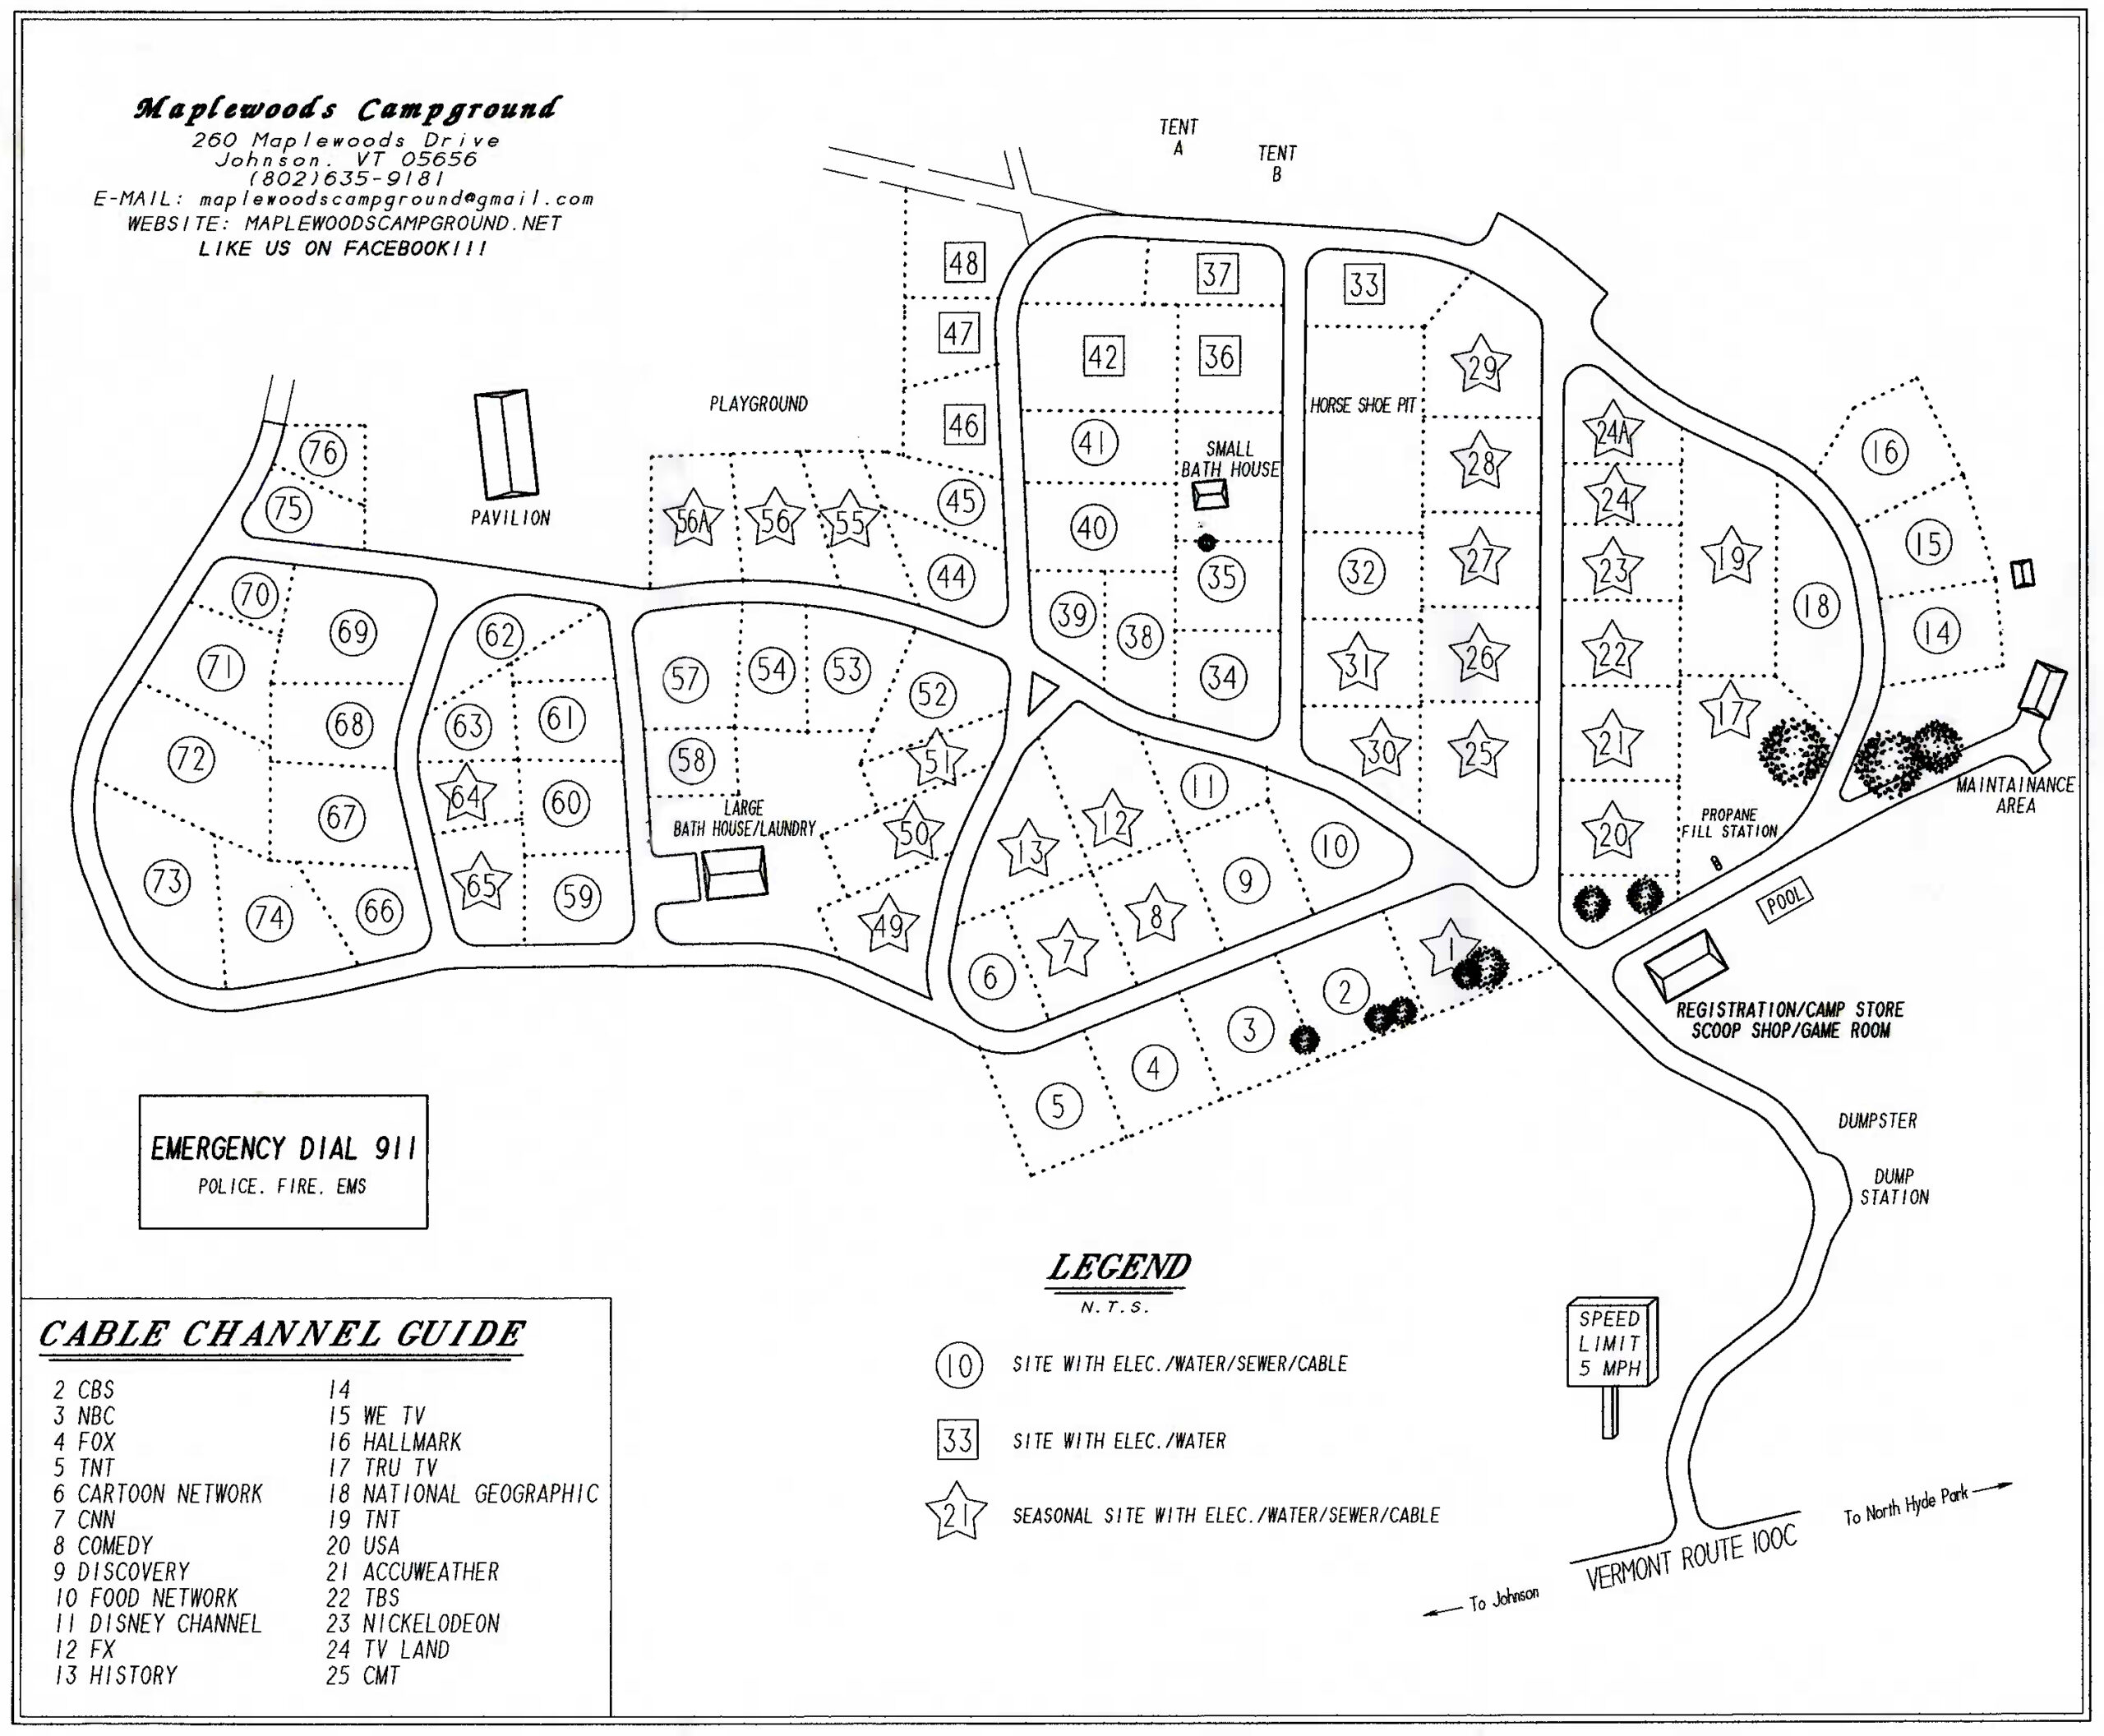 Maplewoods Campground site Map